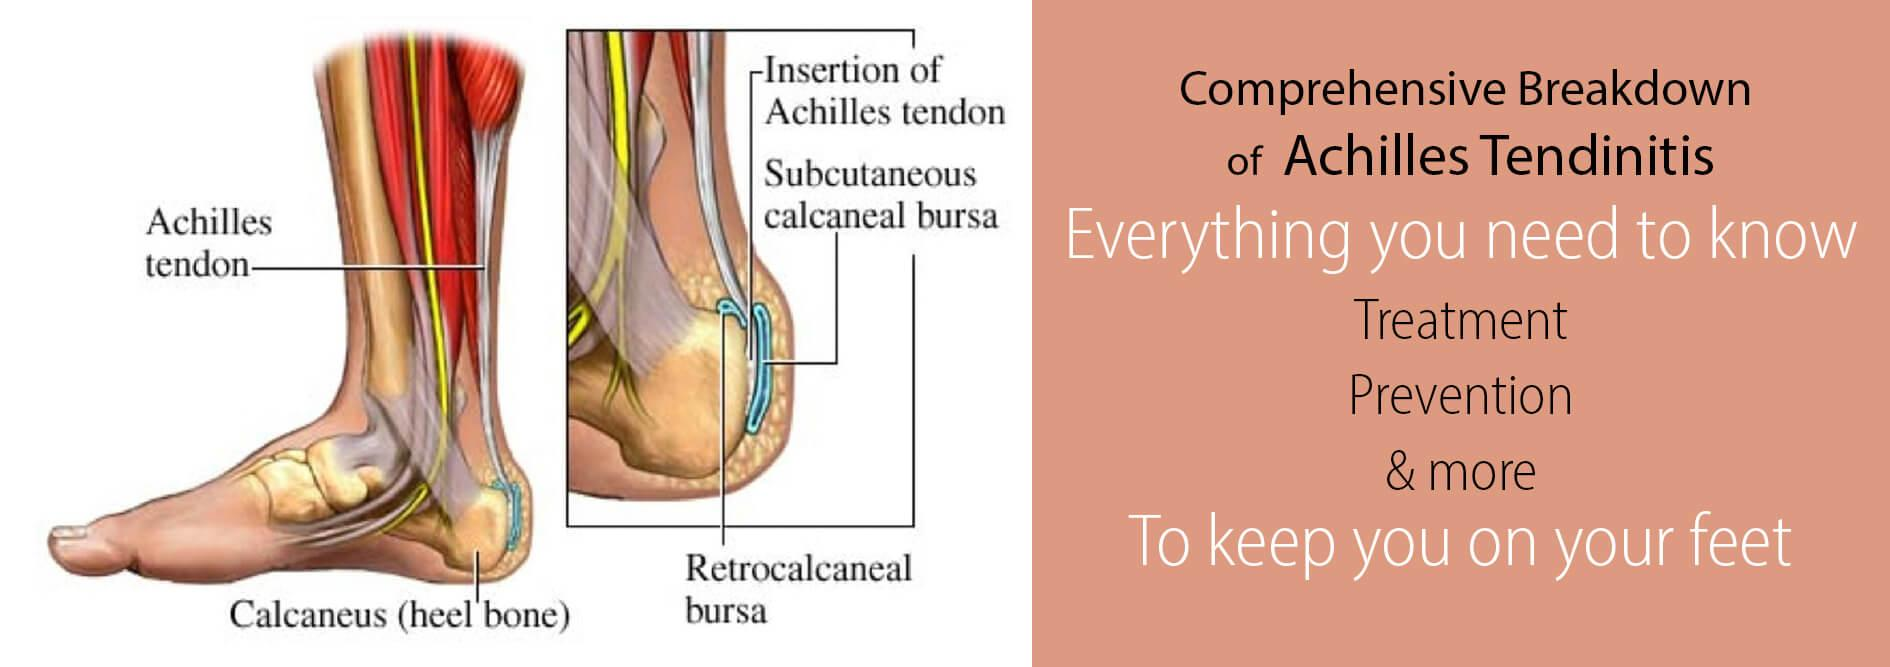 Achilles tendon rupture physical therapy - Achilles Tendinitis